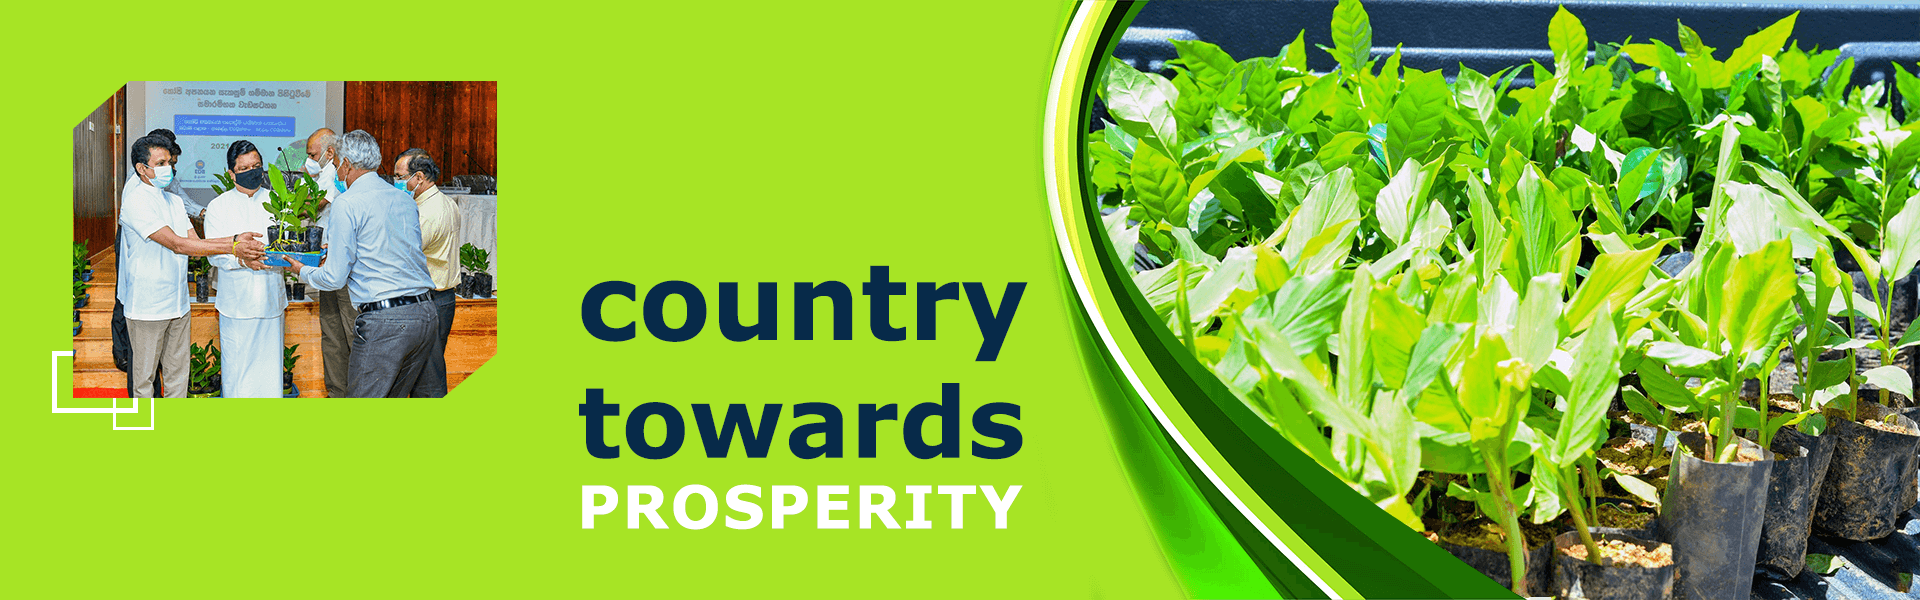 Ministry of Trade - Country towards prosperity